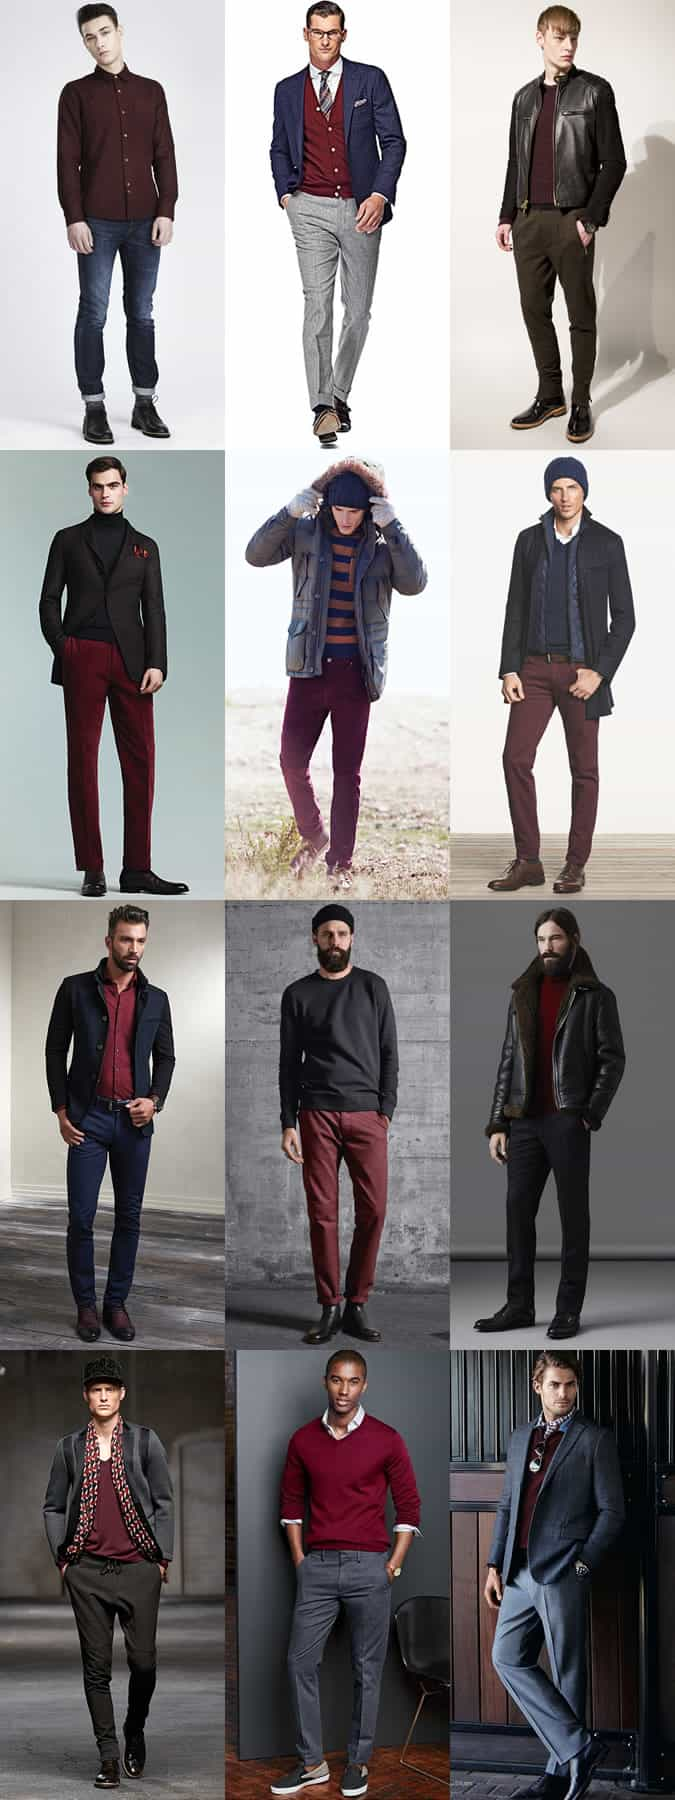 Men's Burgundy Staples (Knitwear, Shirts, T-Shirts, Trousers/Chinos) - Autumn/Winter Outfit Inspiration Lookbook